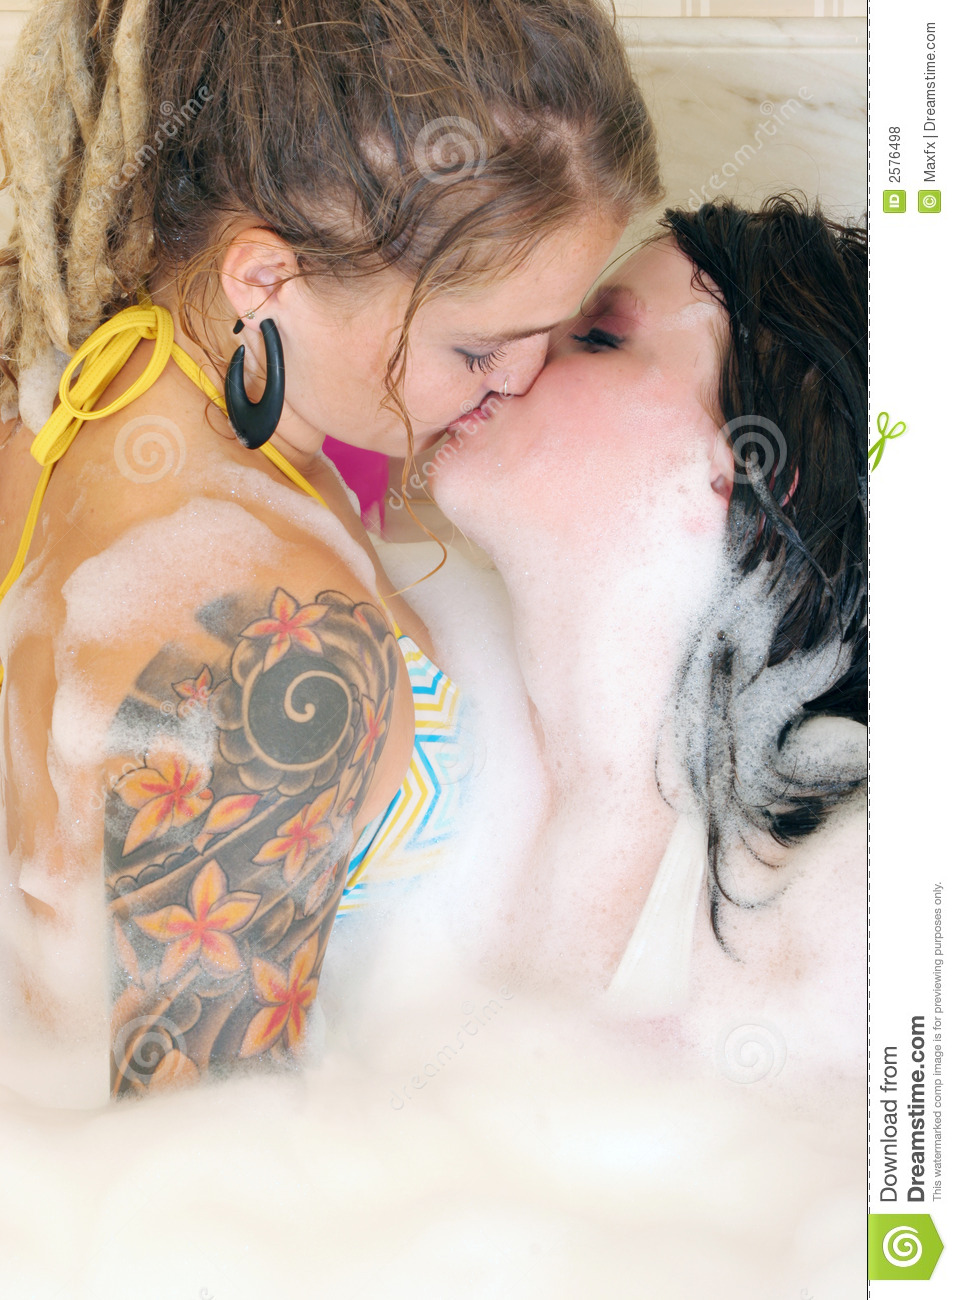 Two Women In Bathtub Royalty Free Stock Photos - Image: 2576498